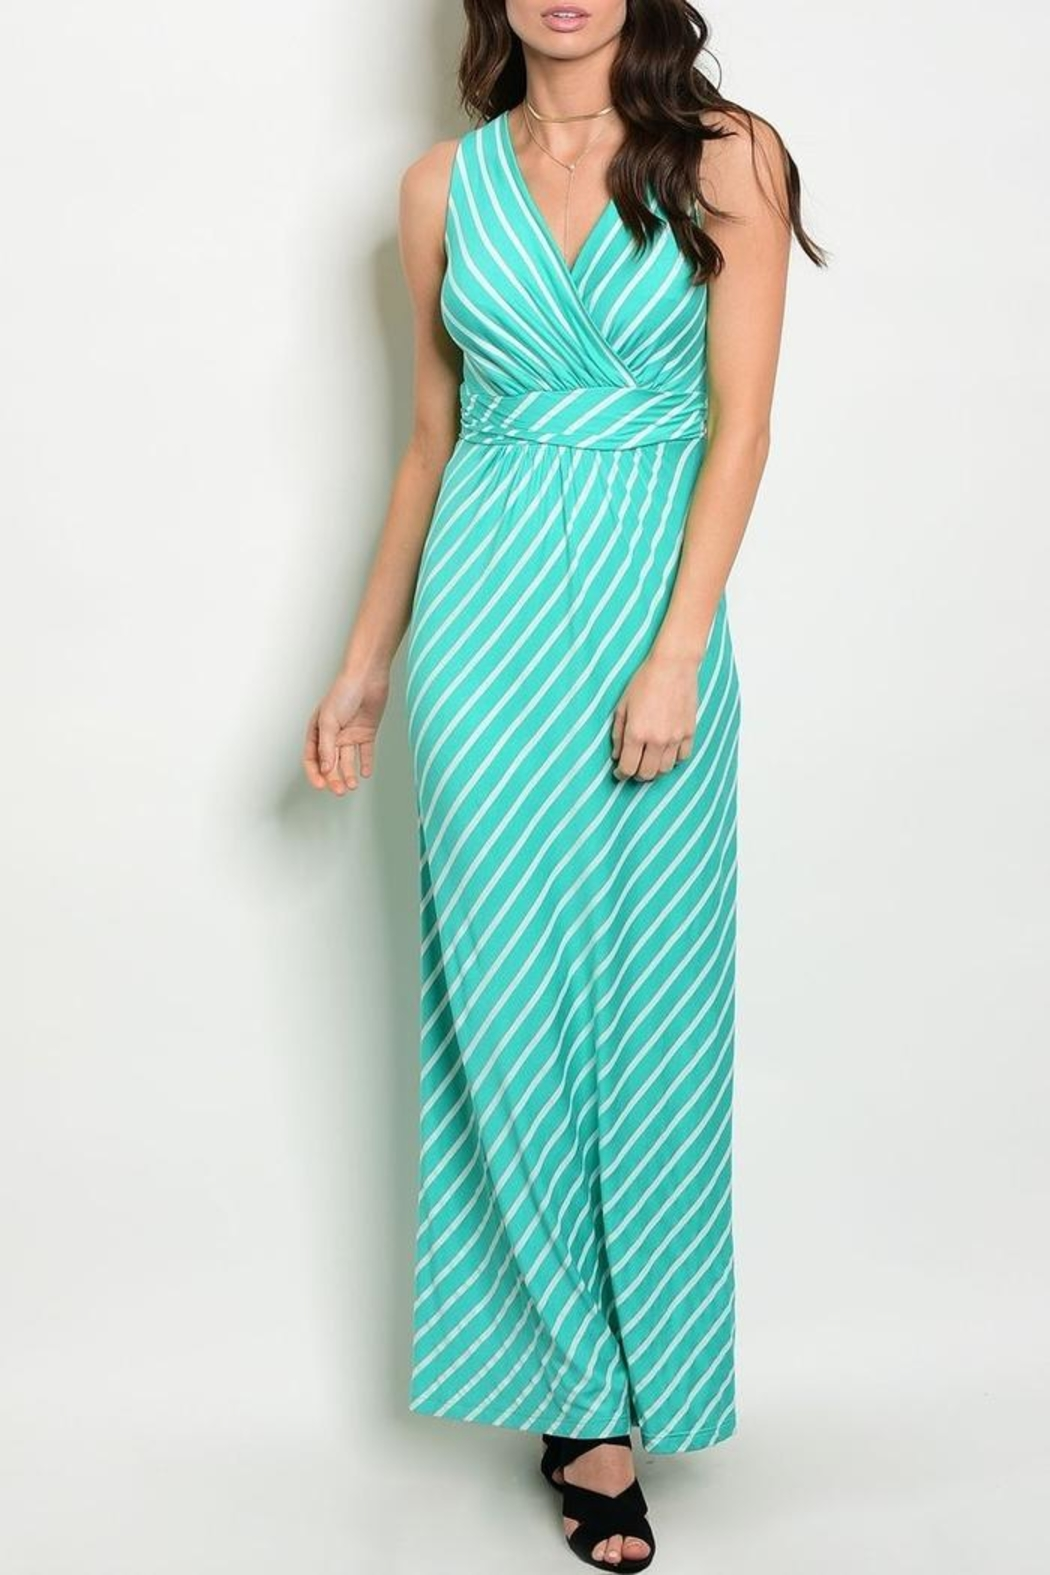 bf1145161f9 Gilli Mint Maxi Dress from Kansas by twill tradE — Shoptiques